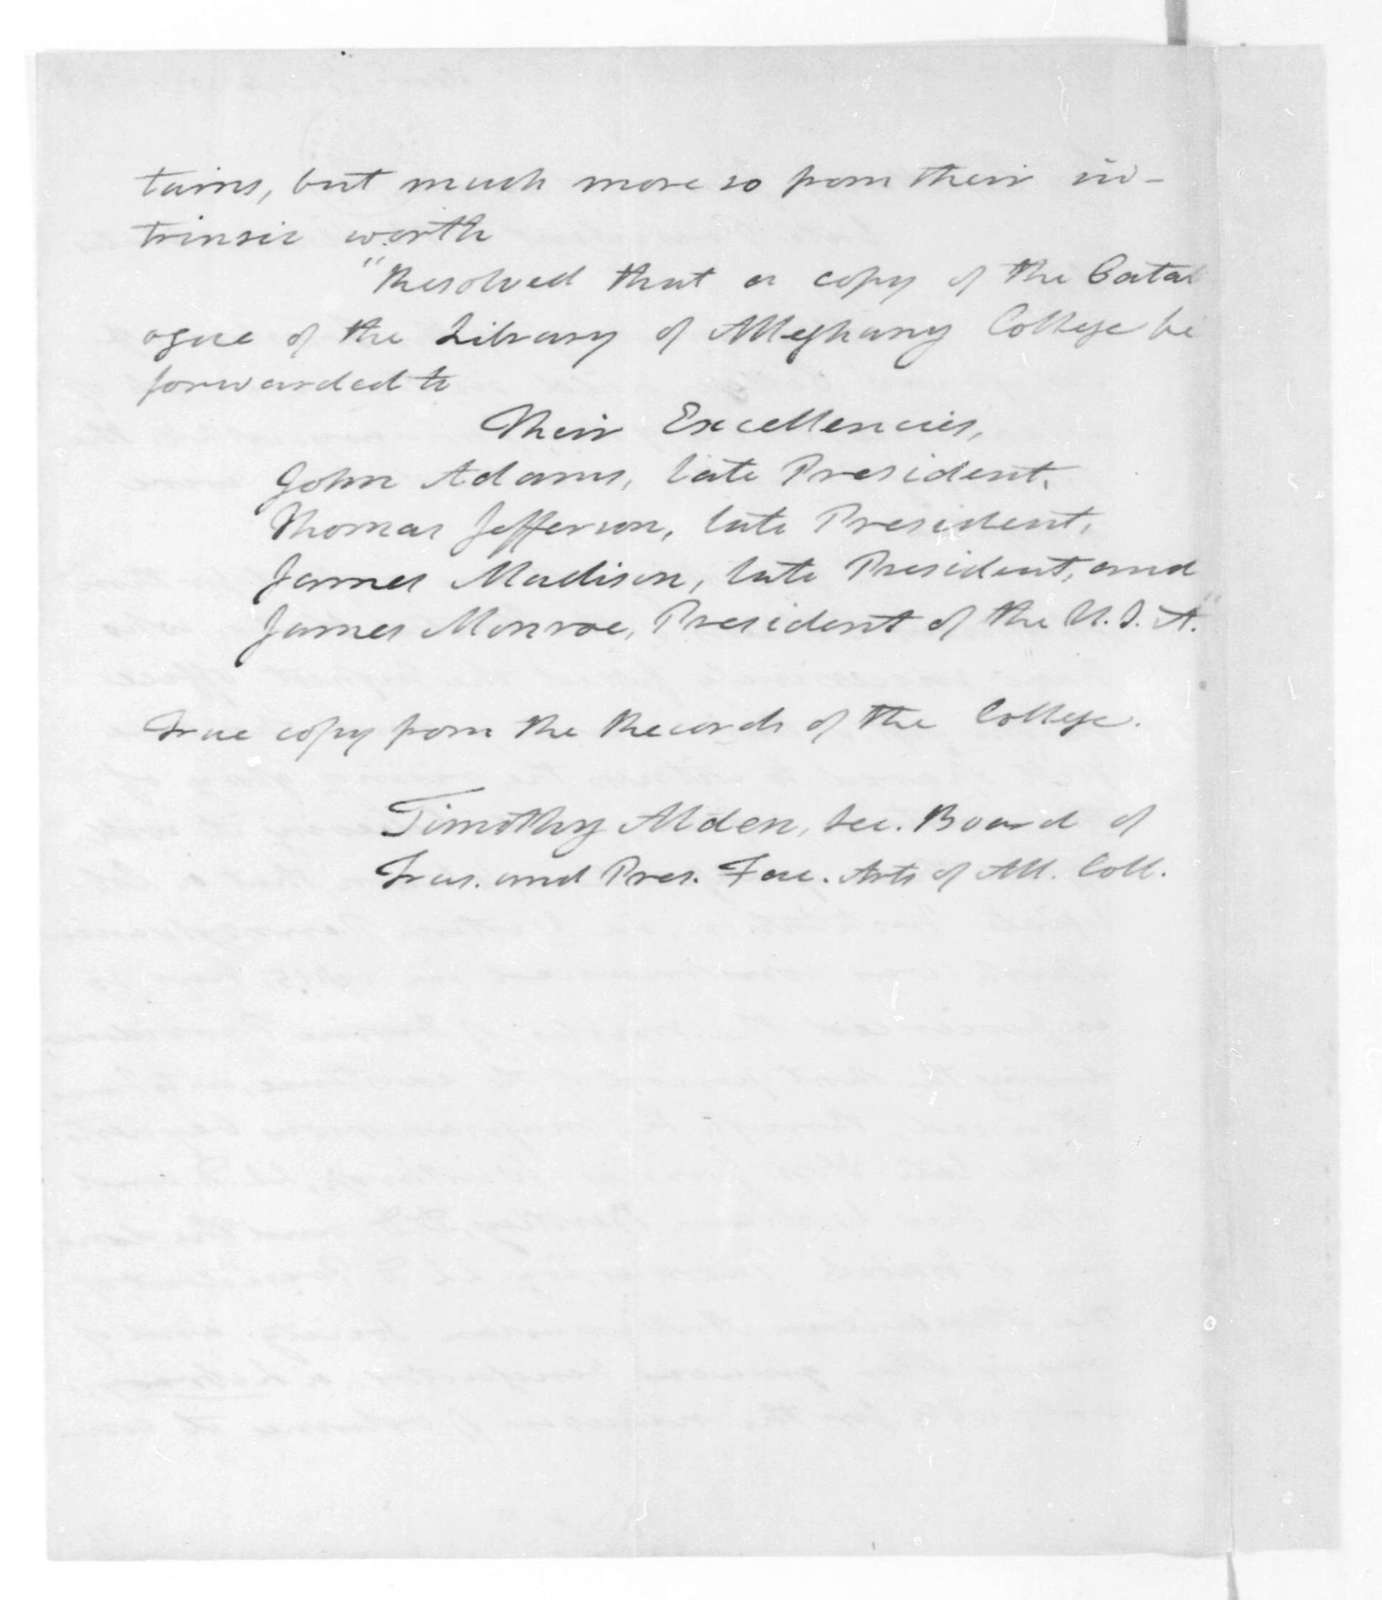 Timothy Alden to James Madison, January 6, 1824. Alleghany College Trustees.